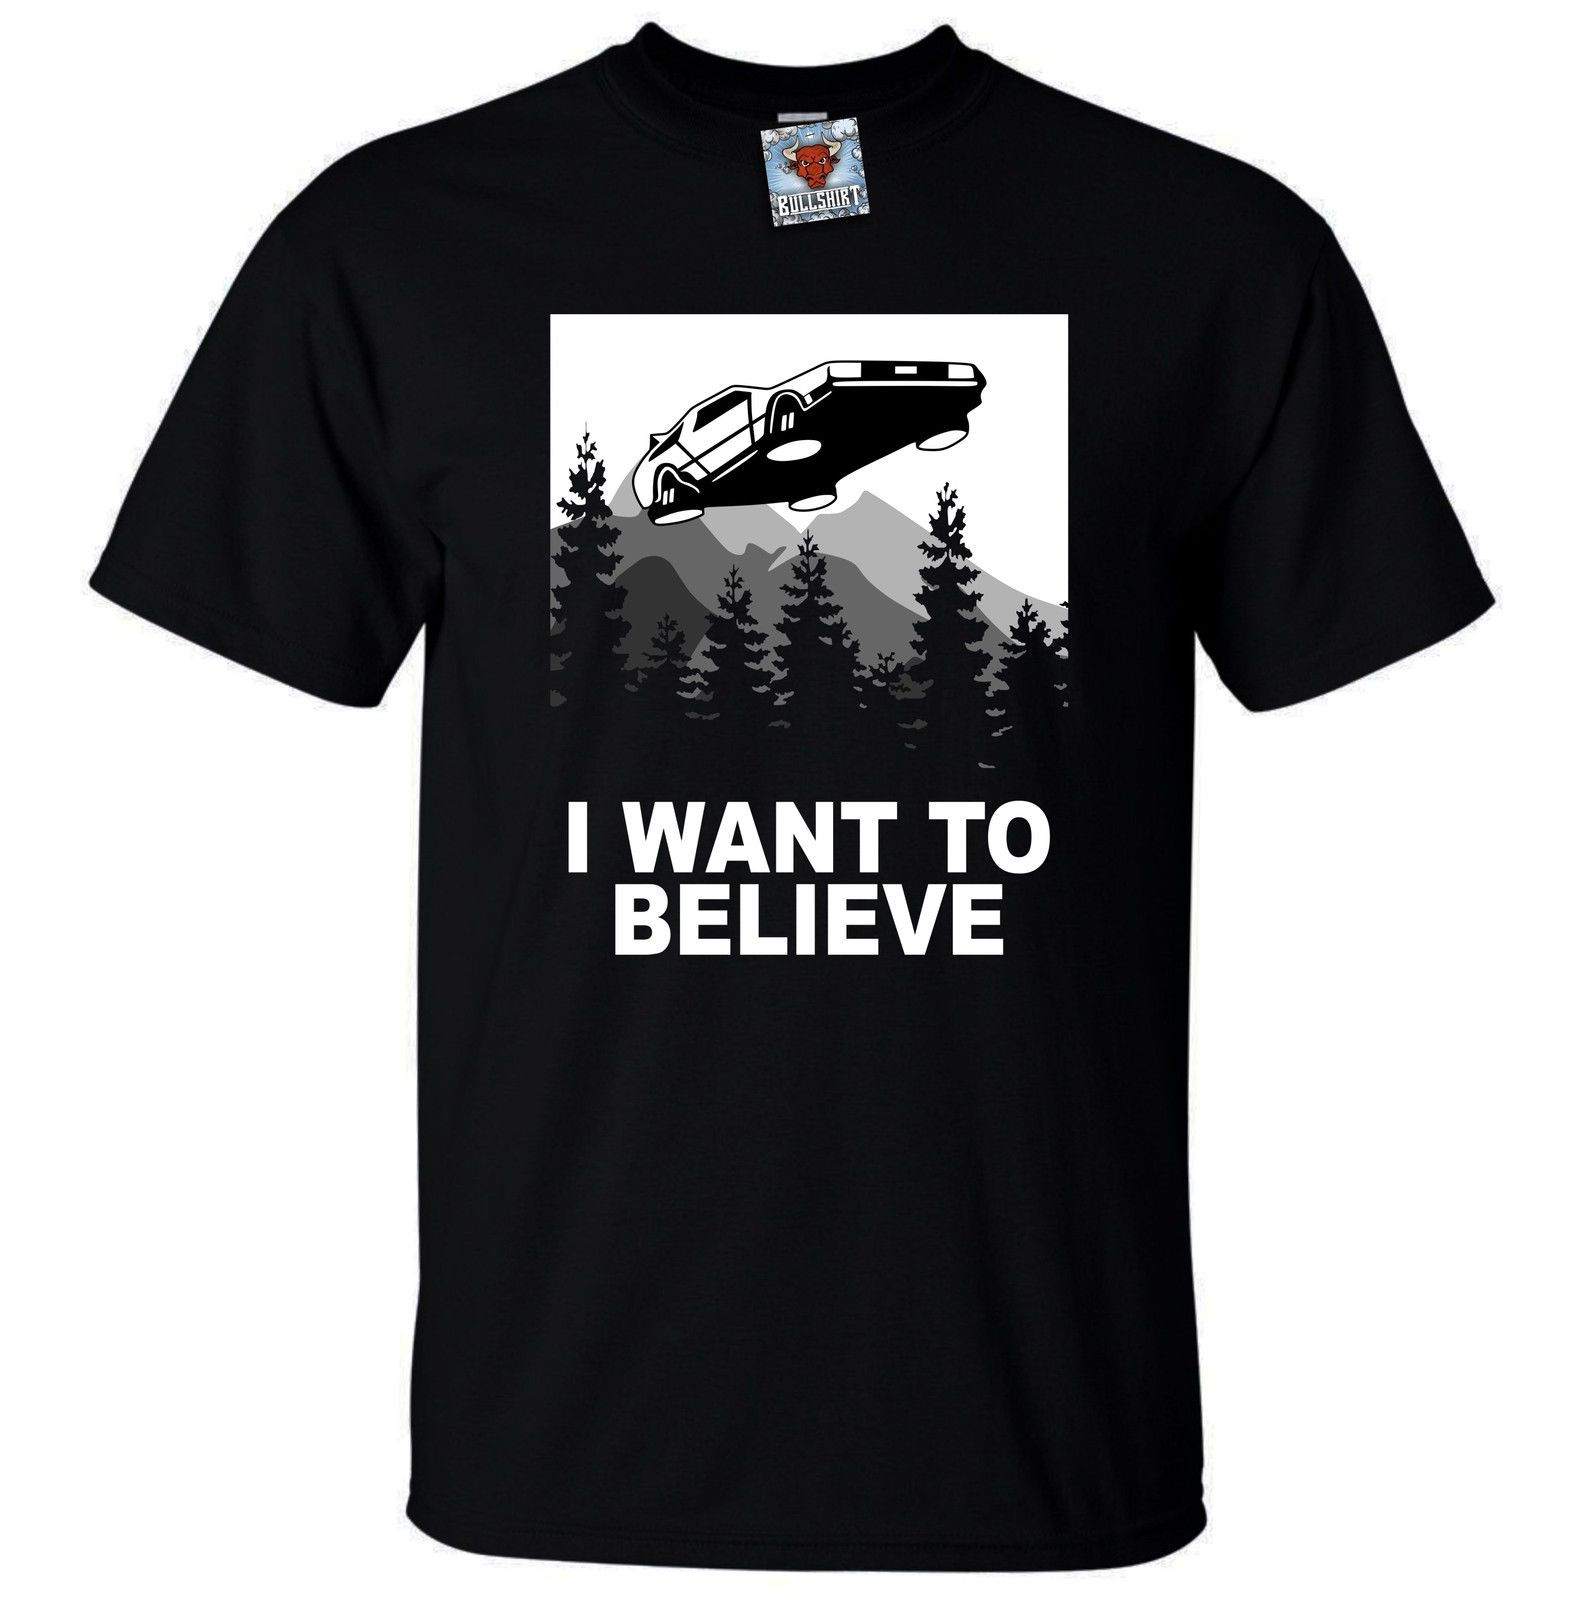 Mens I Want to Believe Future T-Shirt - Funny t shirt Sci Fi parody time travel 100% Cotton T Shirts Brand Clothing Tops Tees